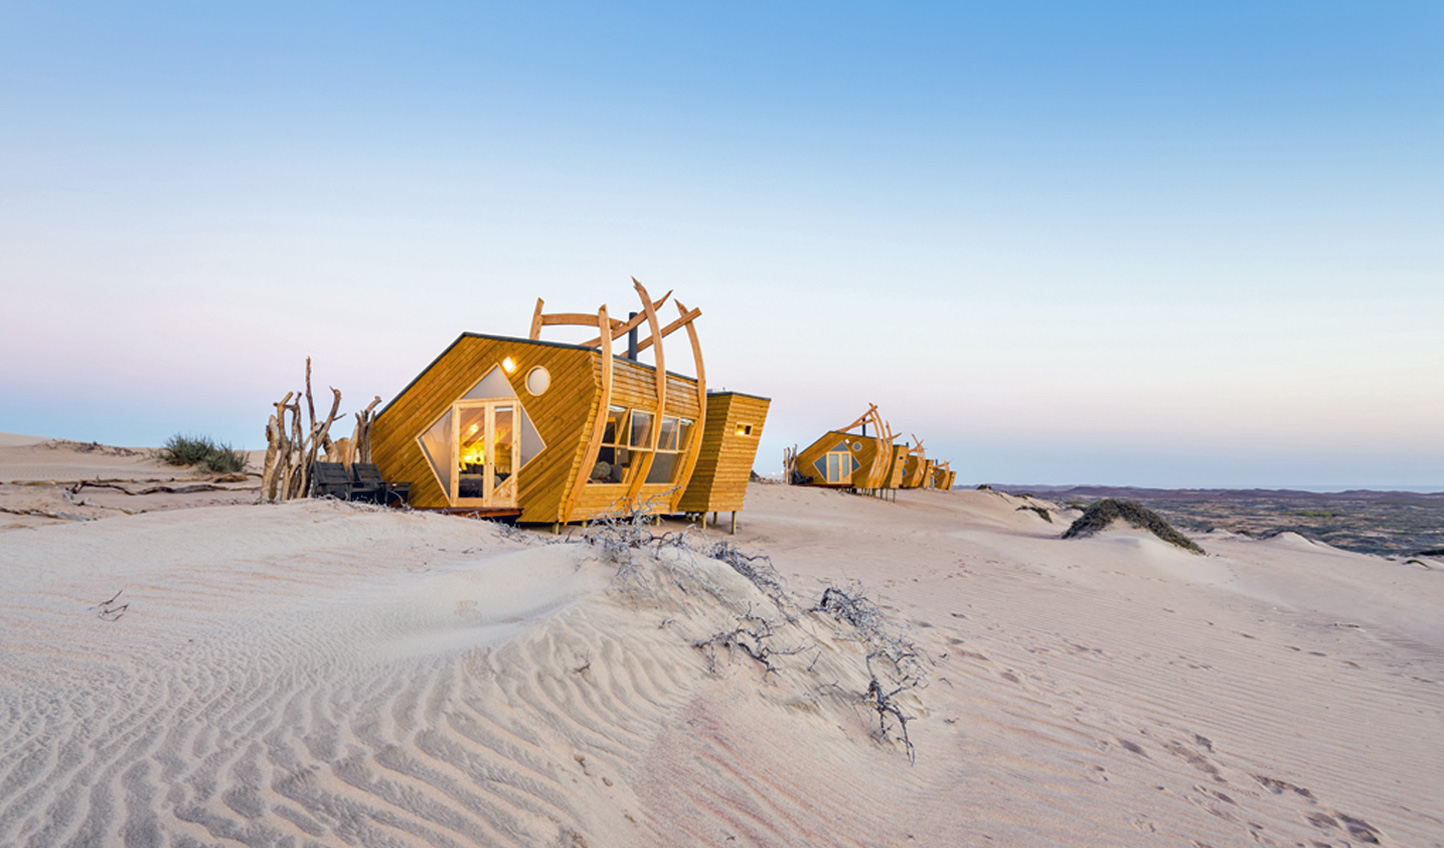 Truly unique; the lodges are inspired by the shipwrecks that line the Skeleton Coast